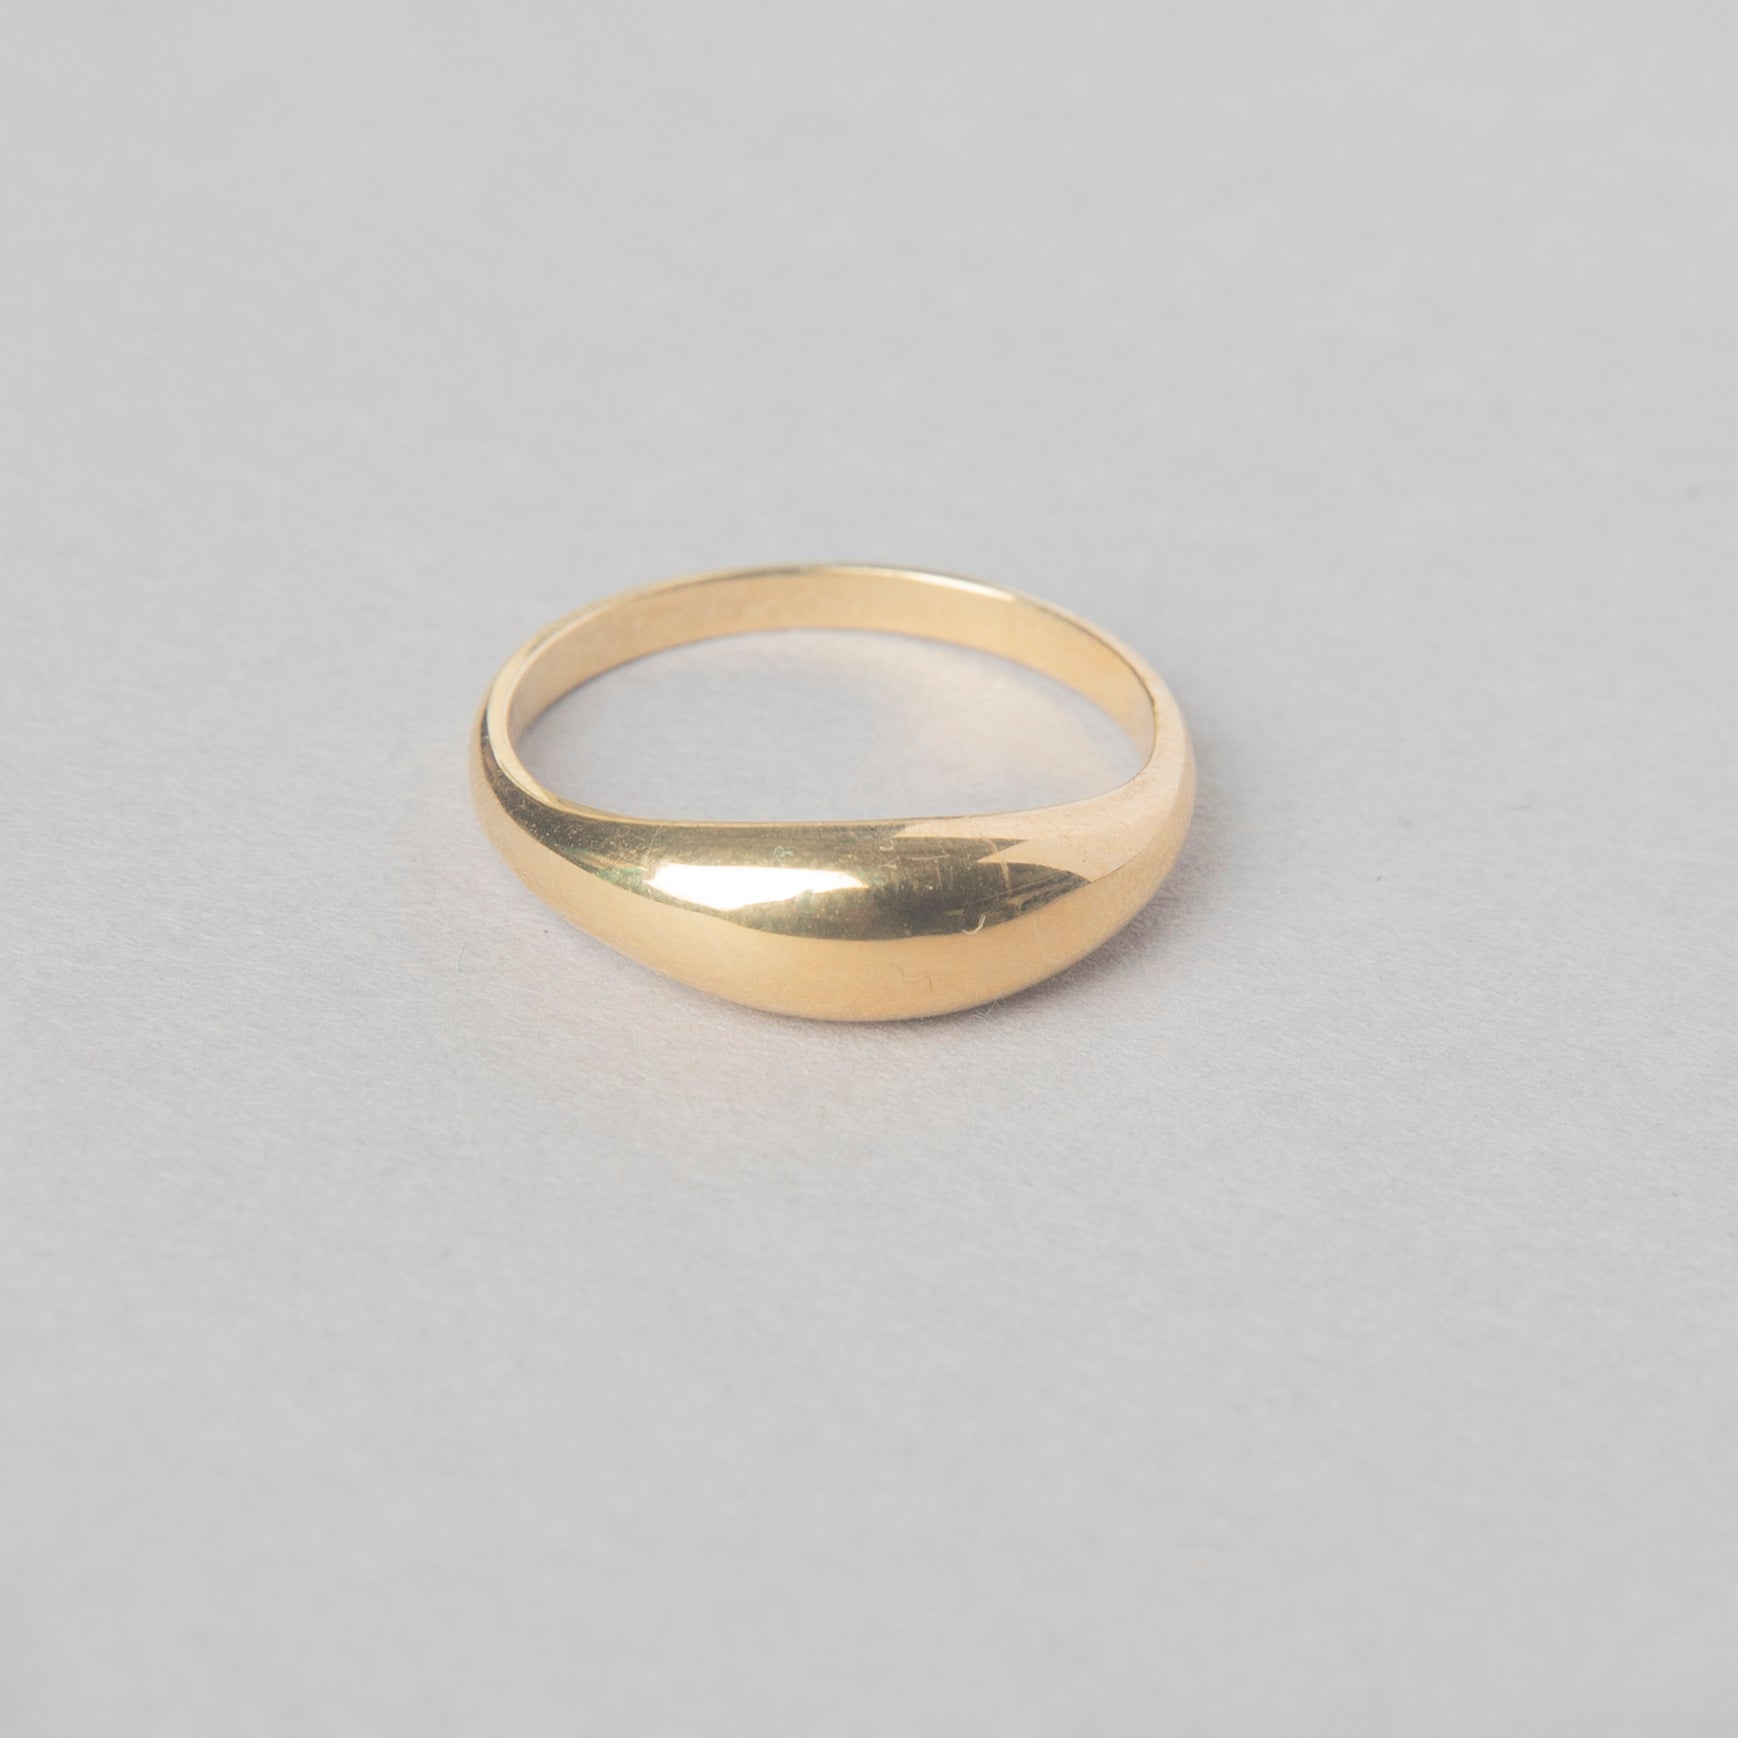 BABY DOME RING 14 KT YELLOW GOLD